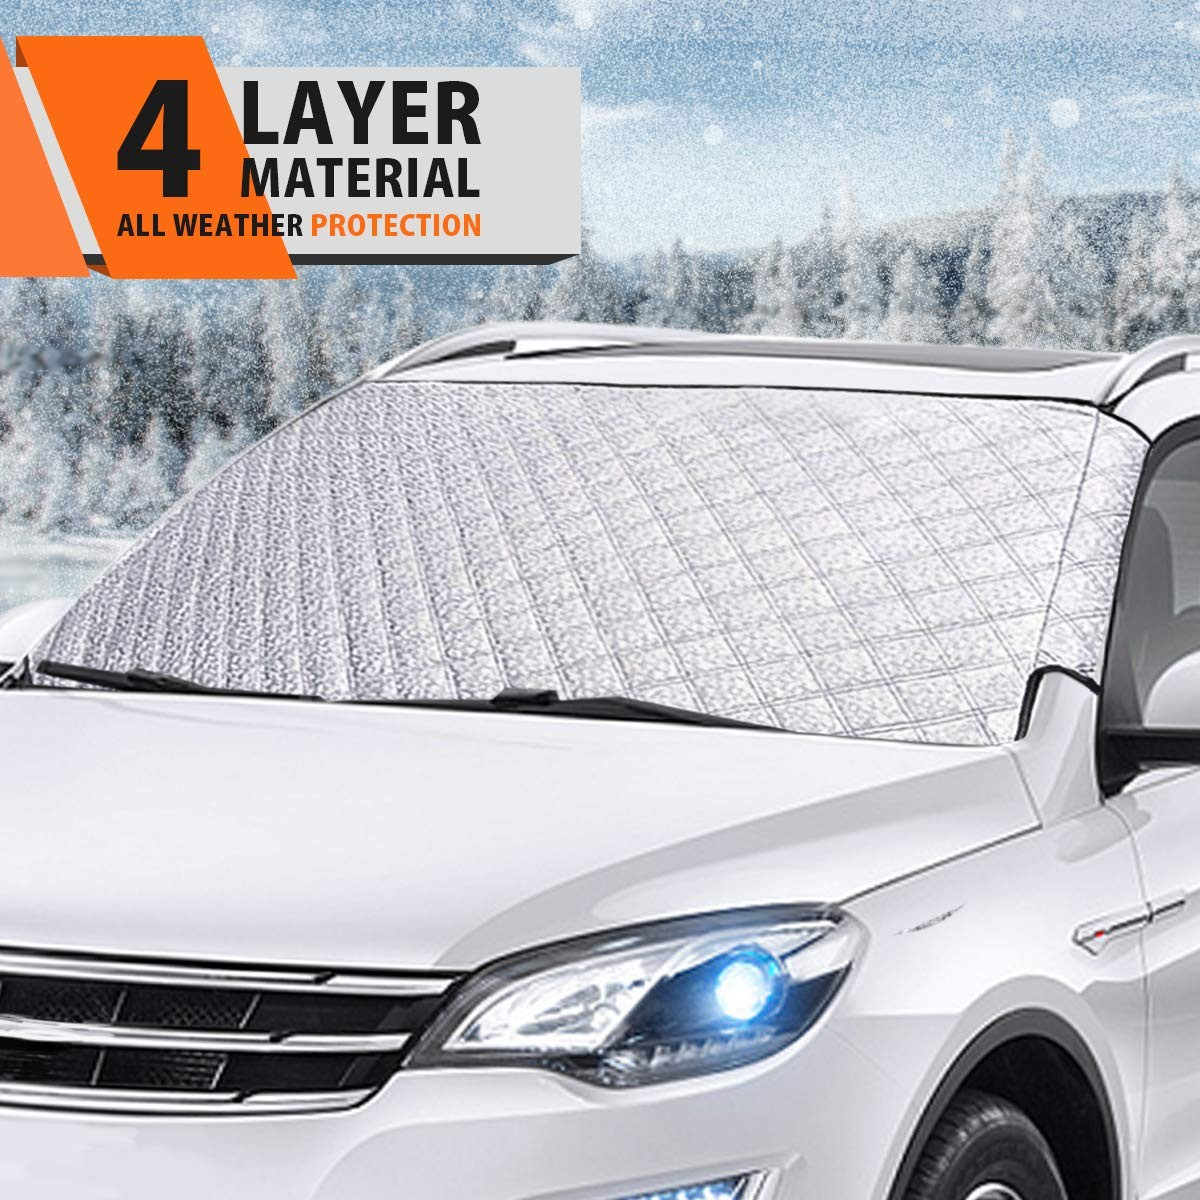 Frost Guard Windshield Cover for Most Vehicles Windshield Snow Cover for Car Frost Snow Windshield Cover Protect The Windshield and Wiper from Ice,Snow